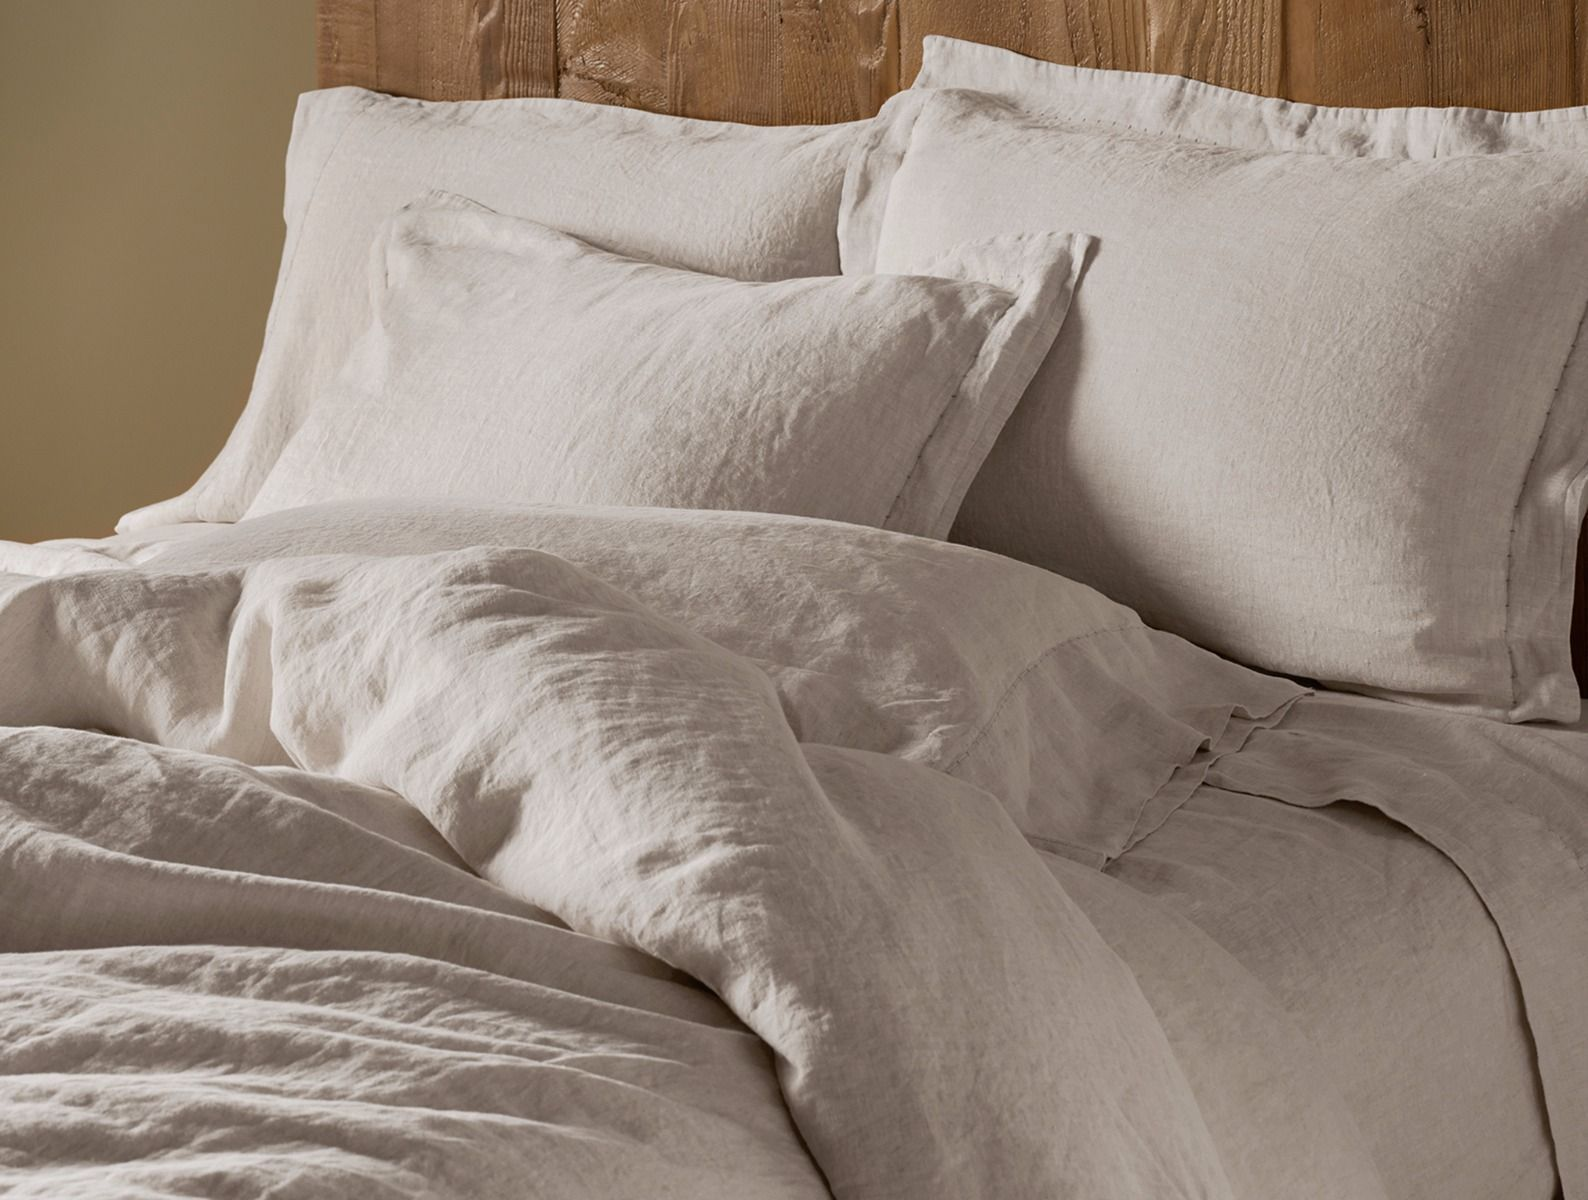 Fig Linens - Coyuchi Organic Linen Chambray Bedding - Natural Undyed